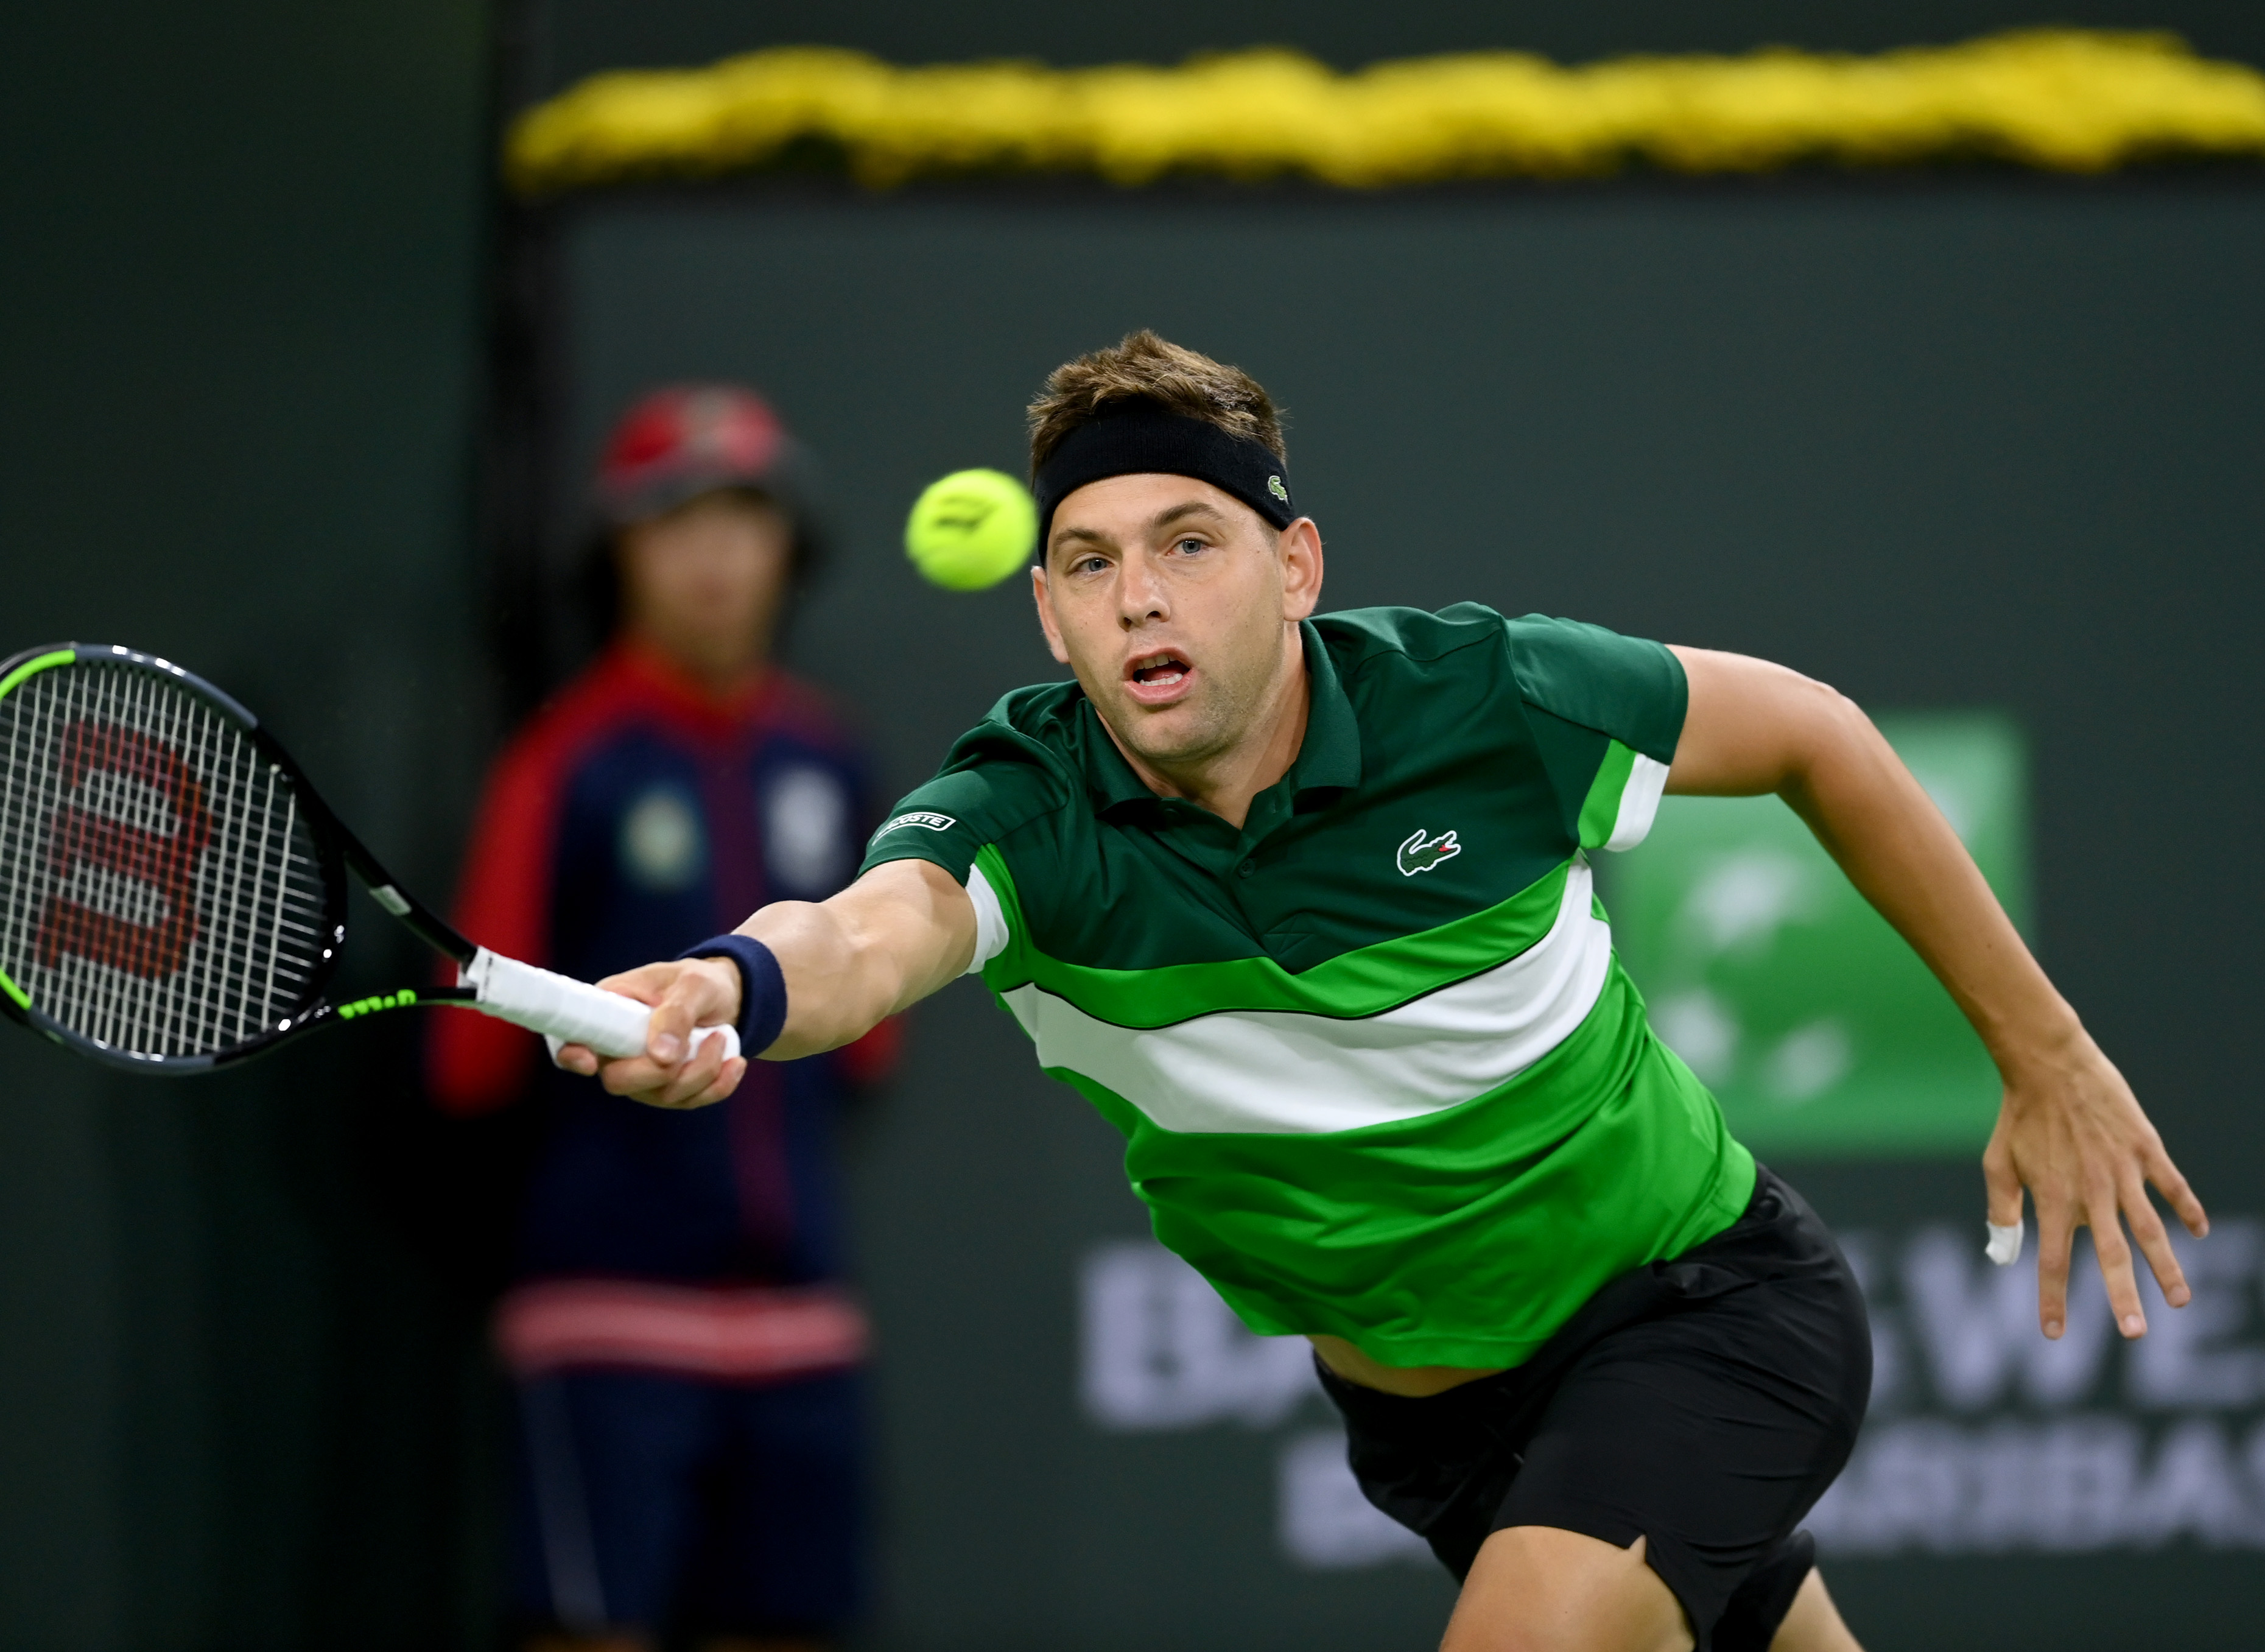 Oct 11, 2021; Indian Wells, CA, USA; Filip Krajinovic (SRB) hits a shot against Daniil Medvedev (RUS) during a third round match in the BNP Paribas Open at the Indian Wells Tennis Garden. Mandatory Credit: Jayne Kamin-Oncea-USA TODAY Sports